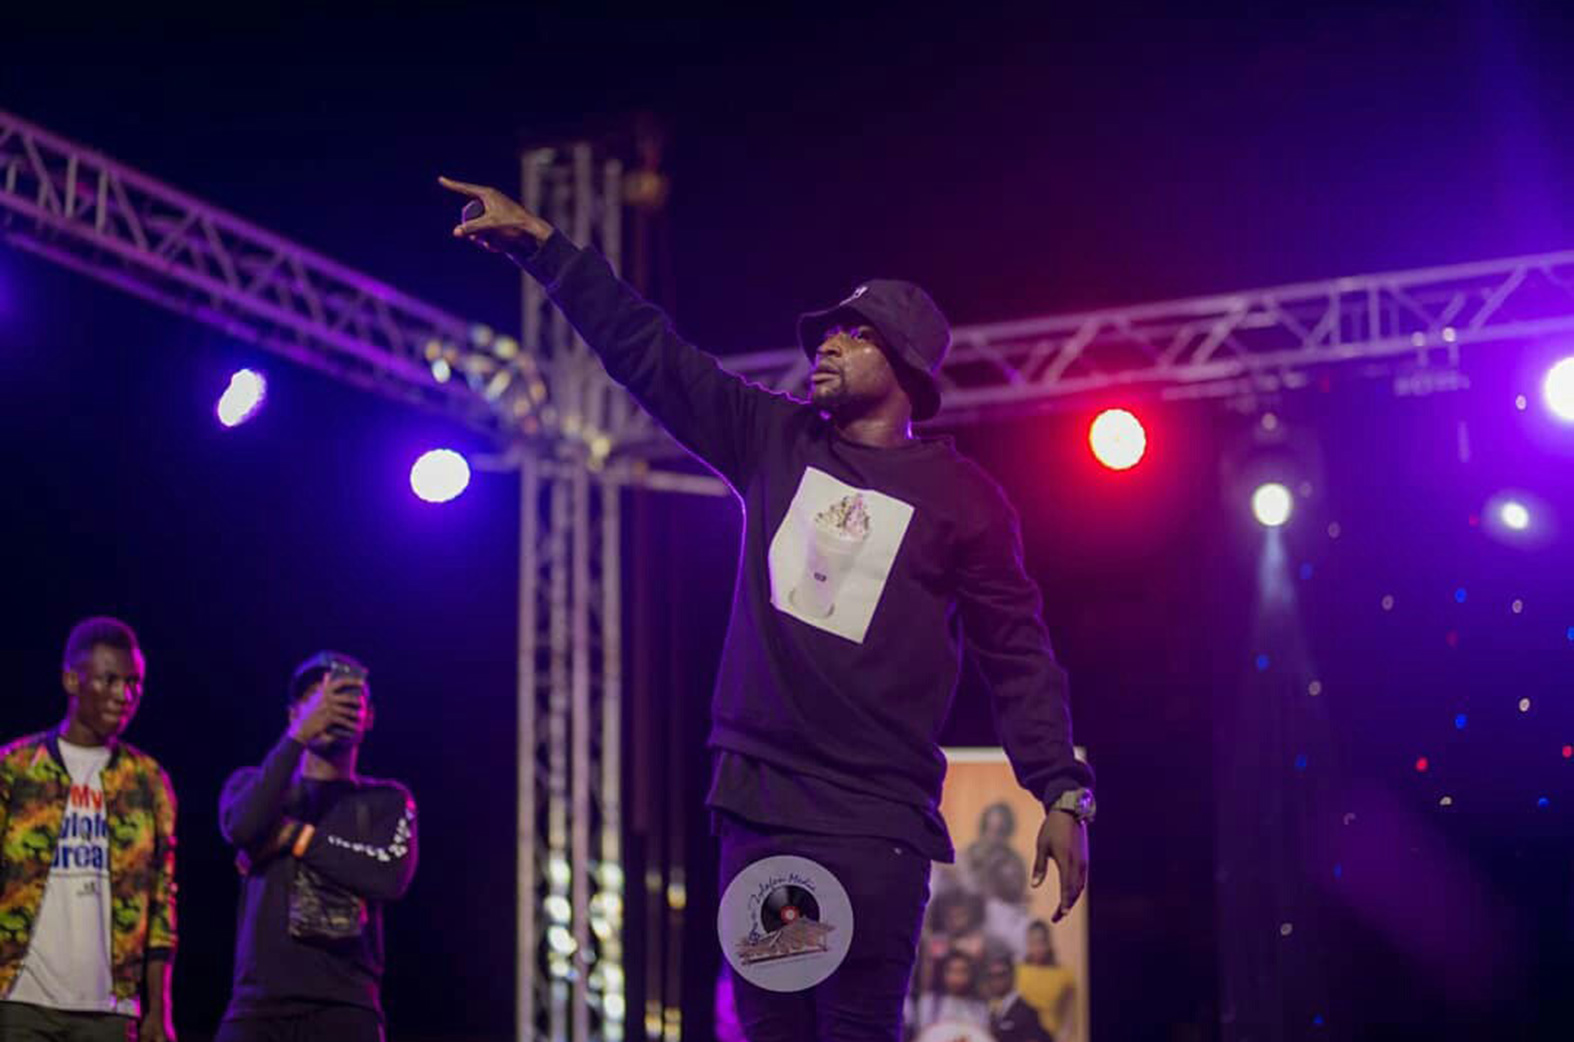 Keeny Ice steals show at Zylofon Cash Activation concert